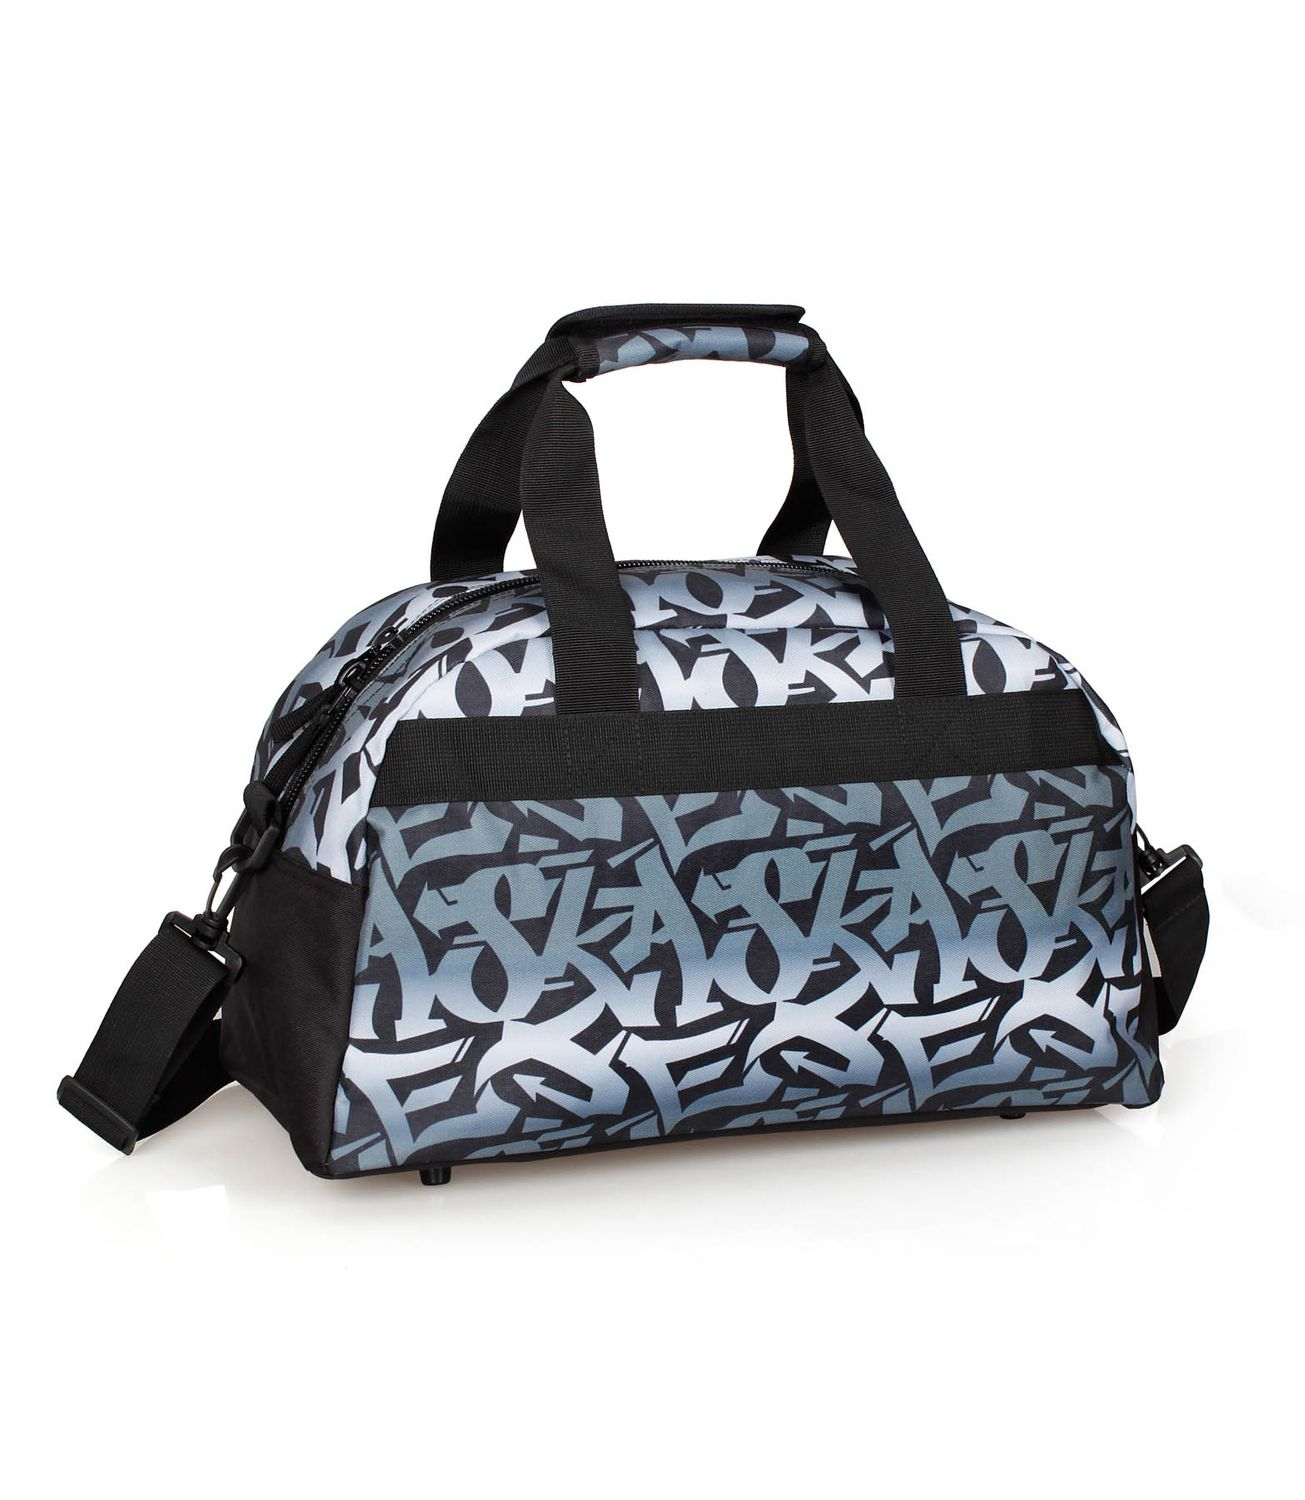 Holdall Travel Bag GRAFFITI SKATE – image 2